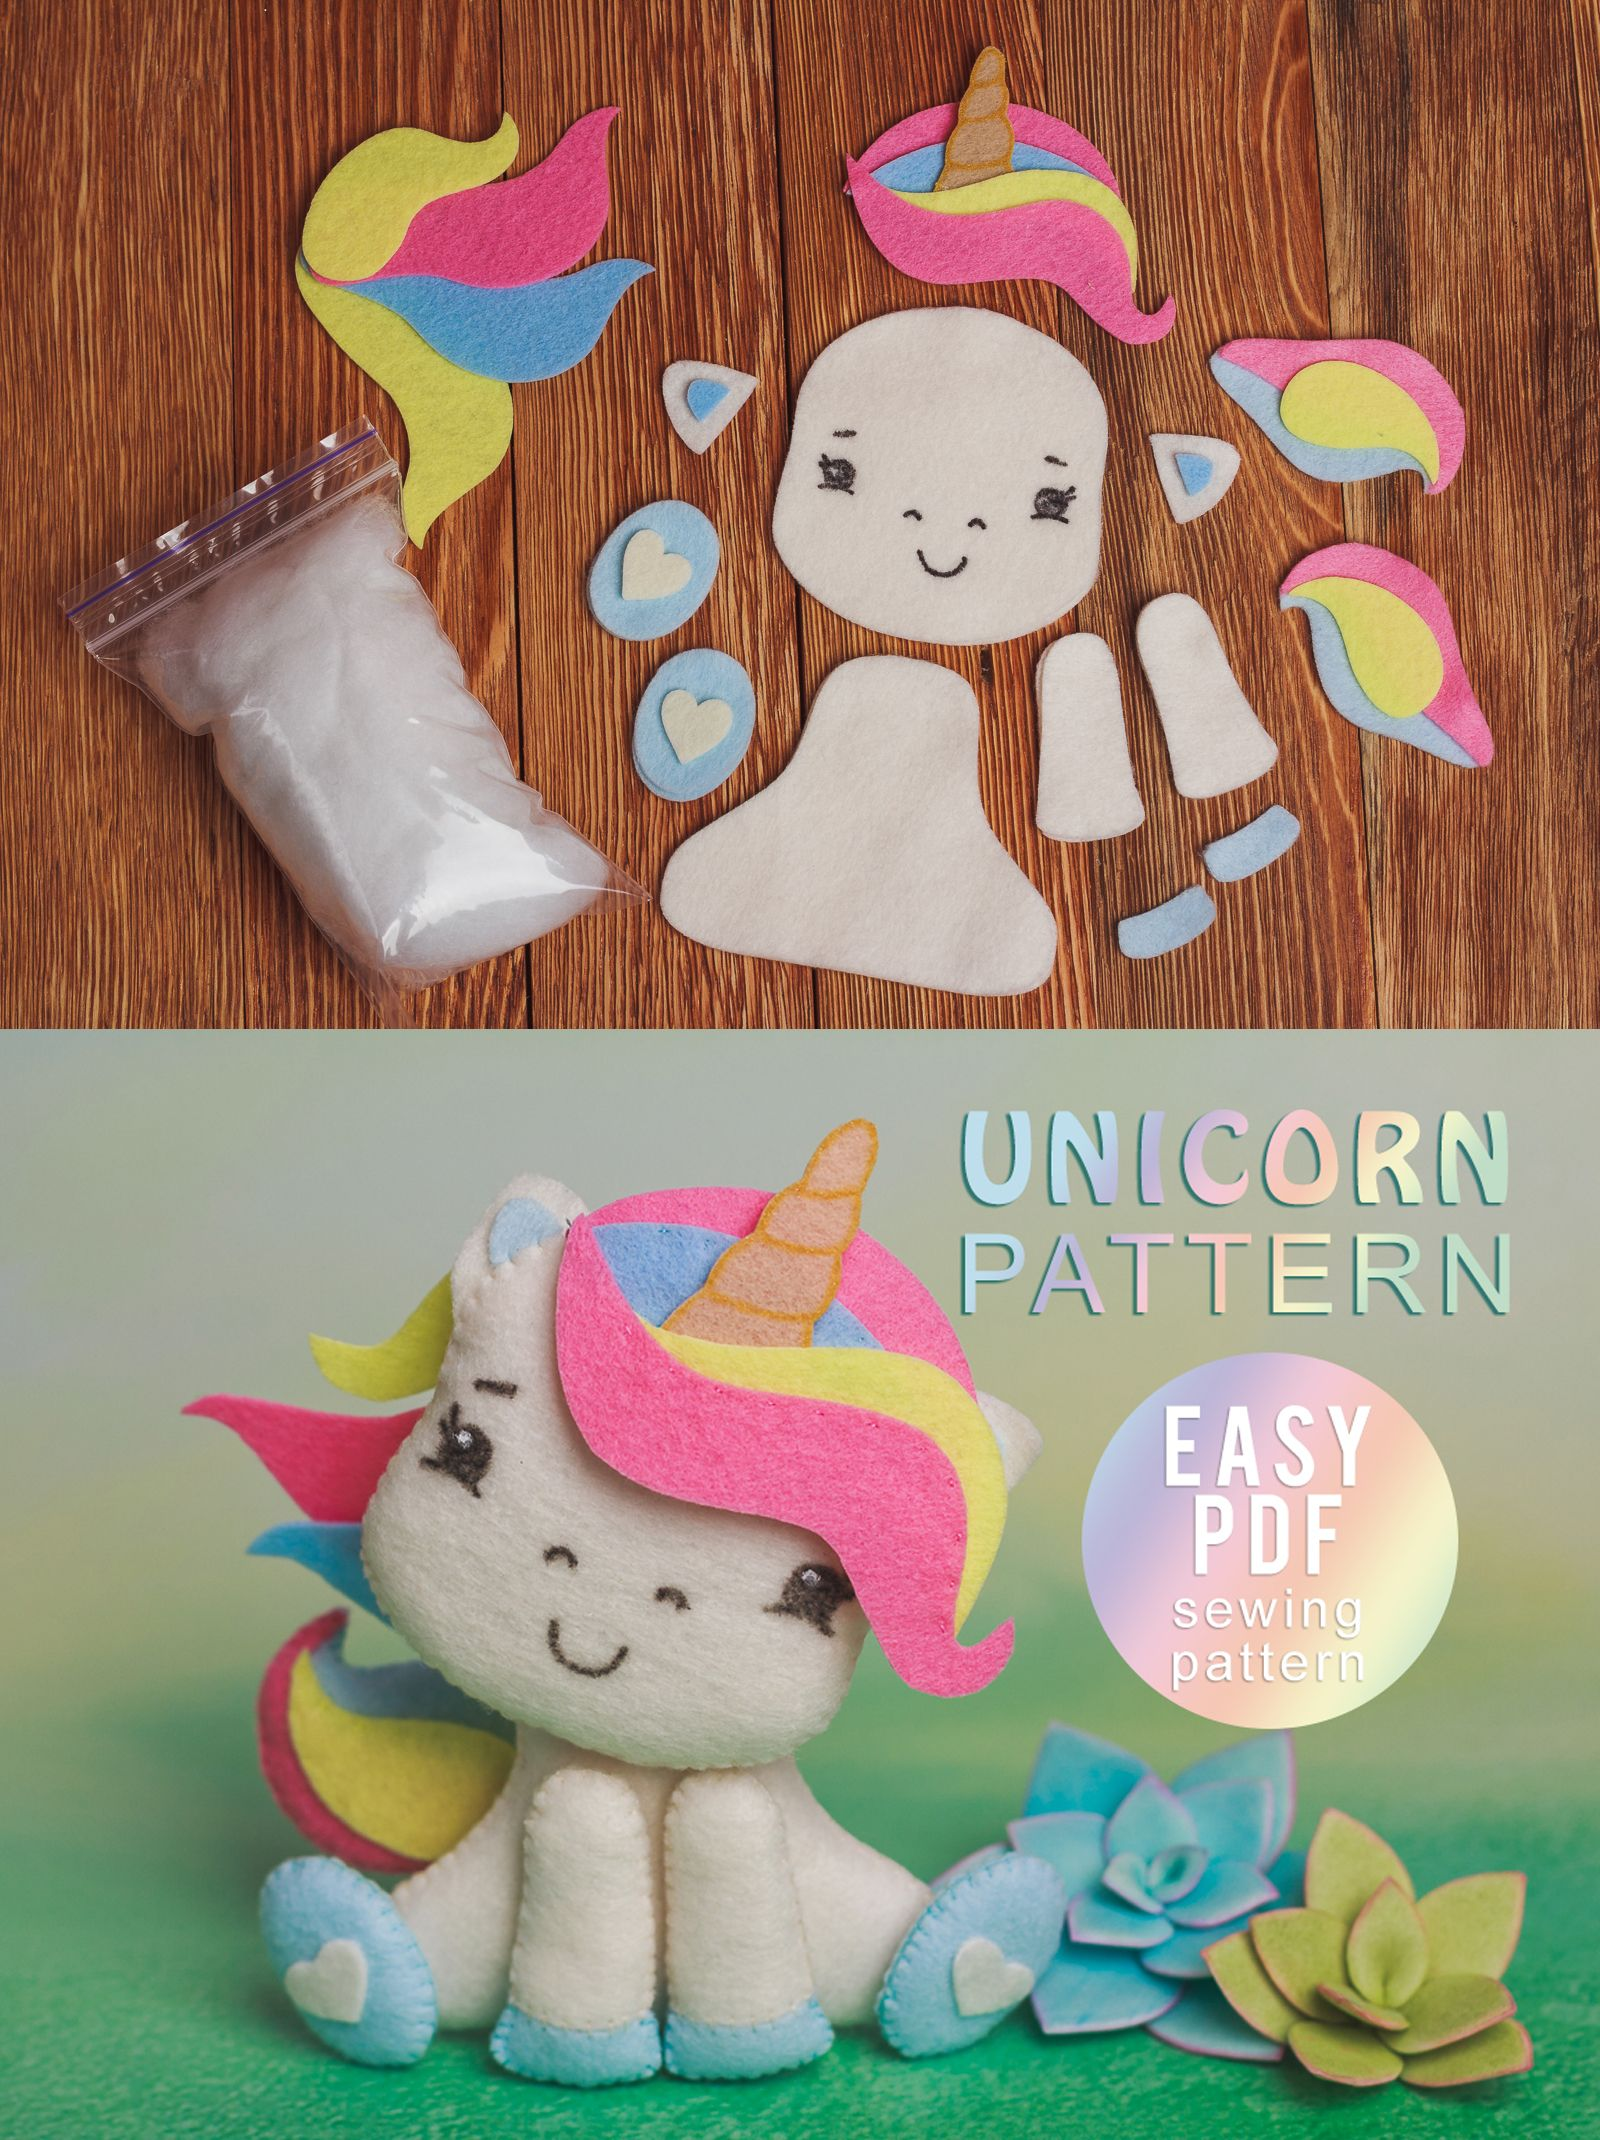 Unicorn sewing kit Felt Craft Kit for kids and adults